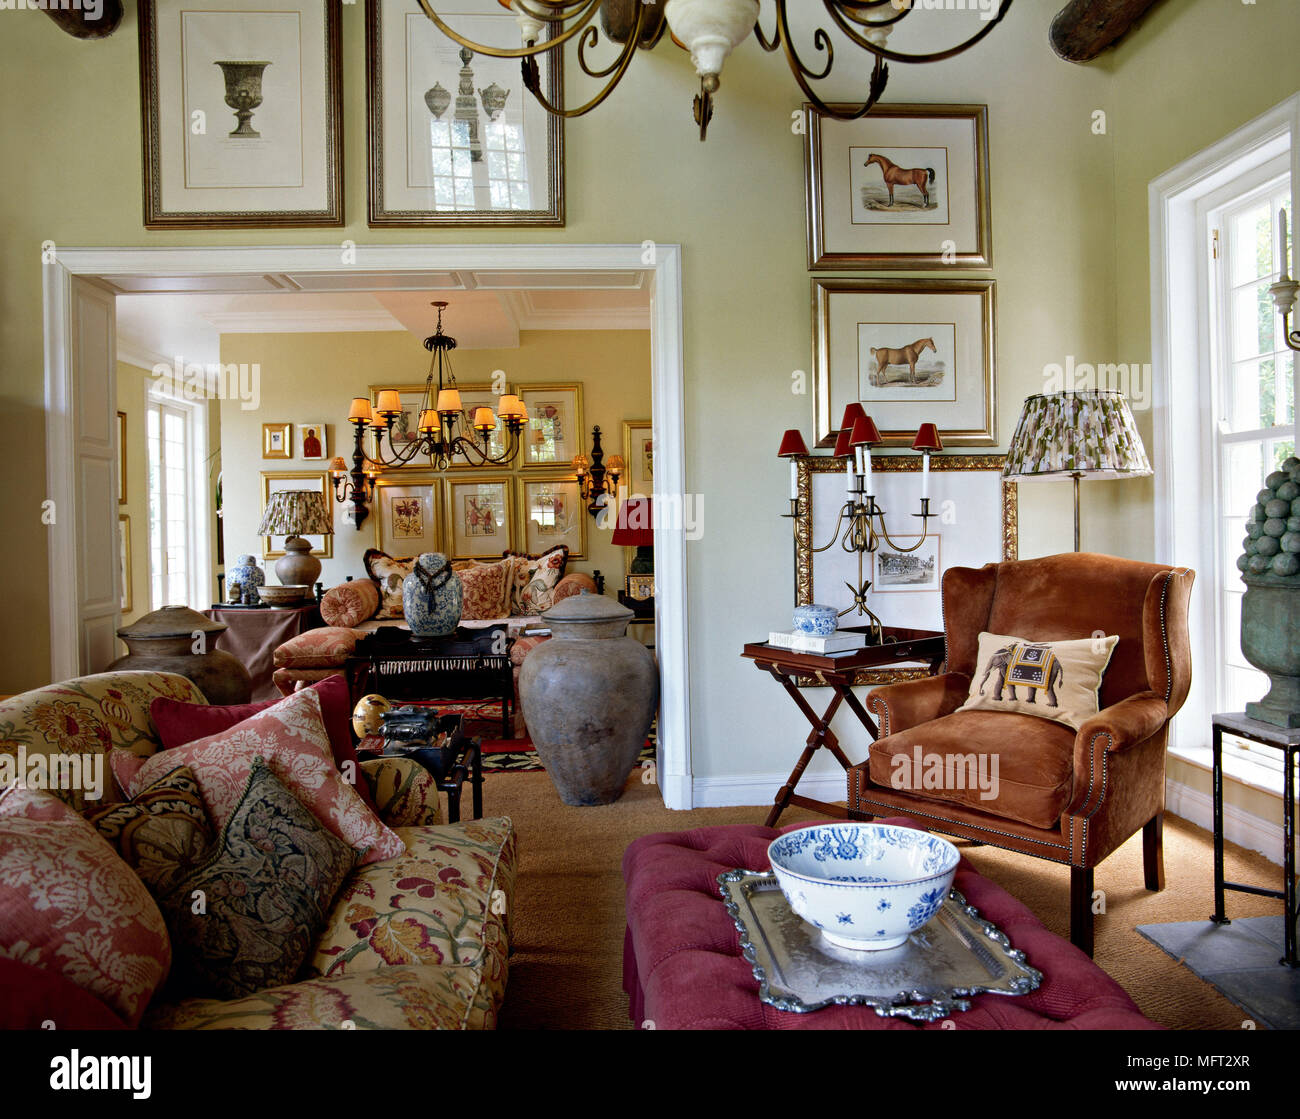 beyond furniture. Traditional Yellow Sitting Room Upholstered Armchair Ottoman Sofa View Through Doorway To Beyond Interiors Rooms Period Features Furniture Antiqu C